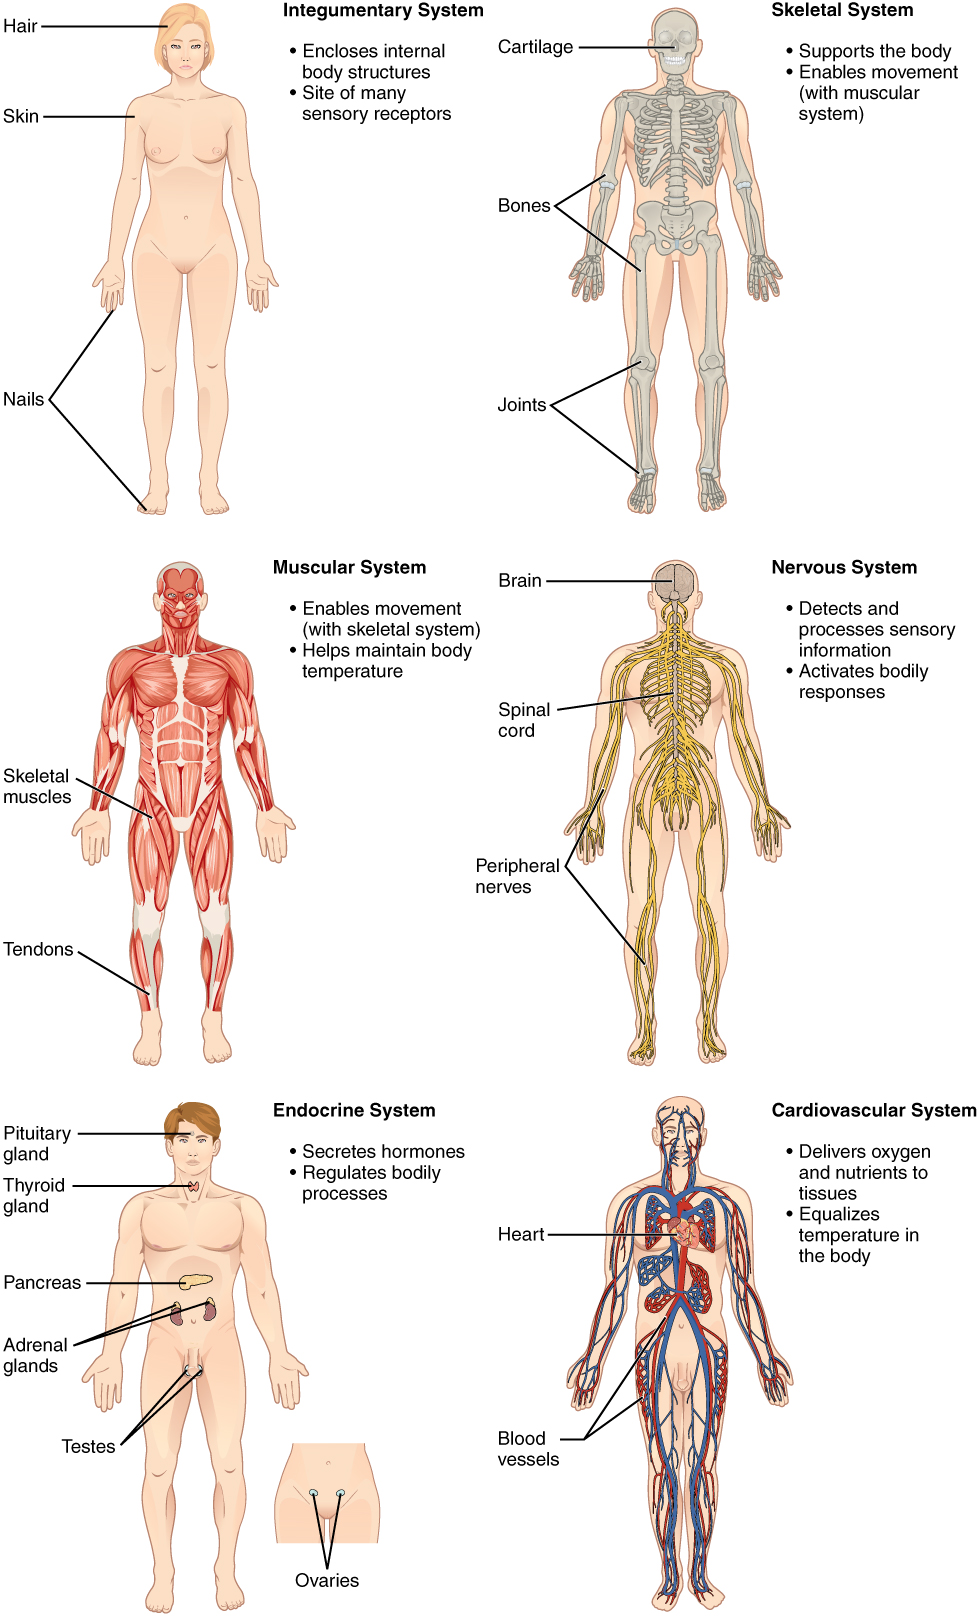 Organ systems of the human body. Image description available.